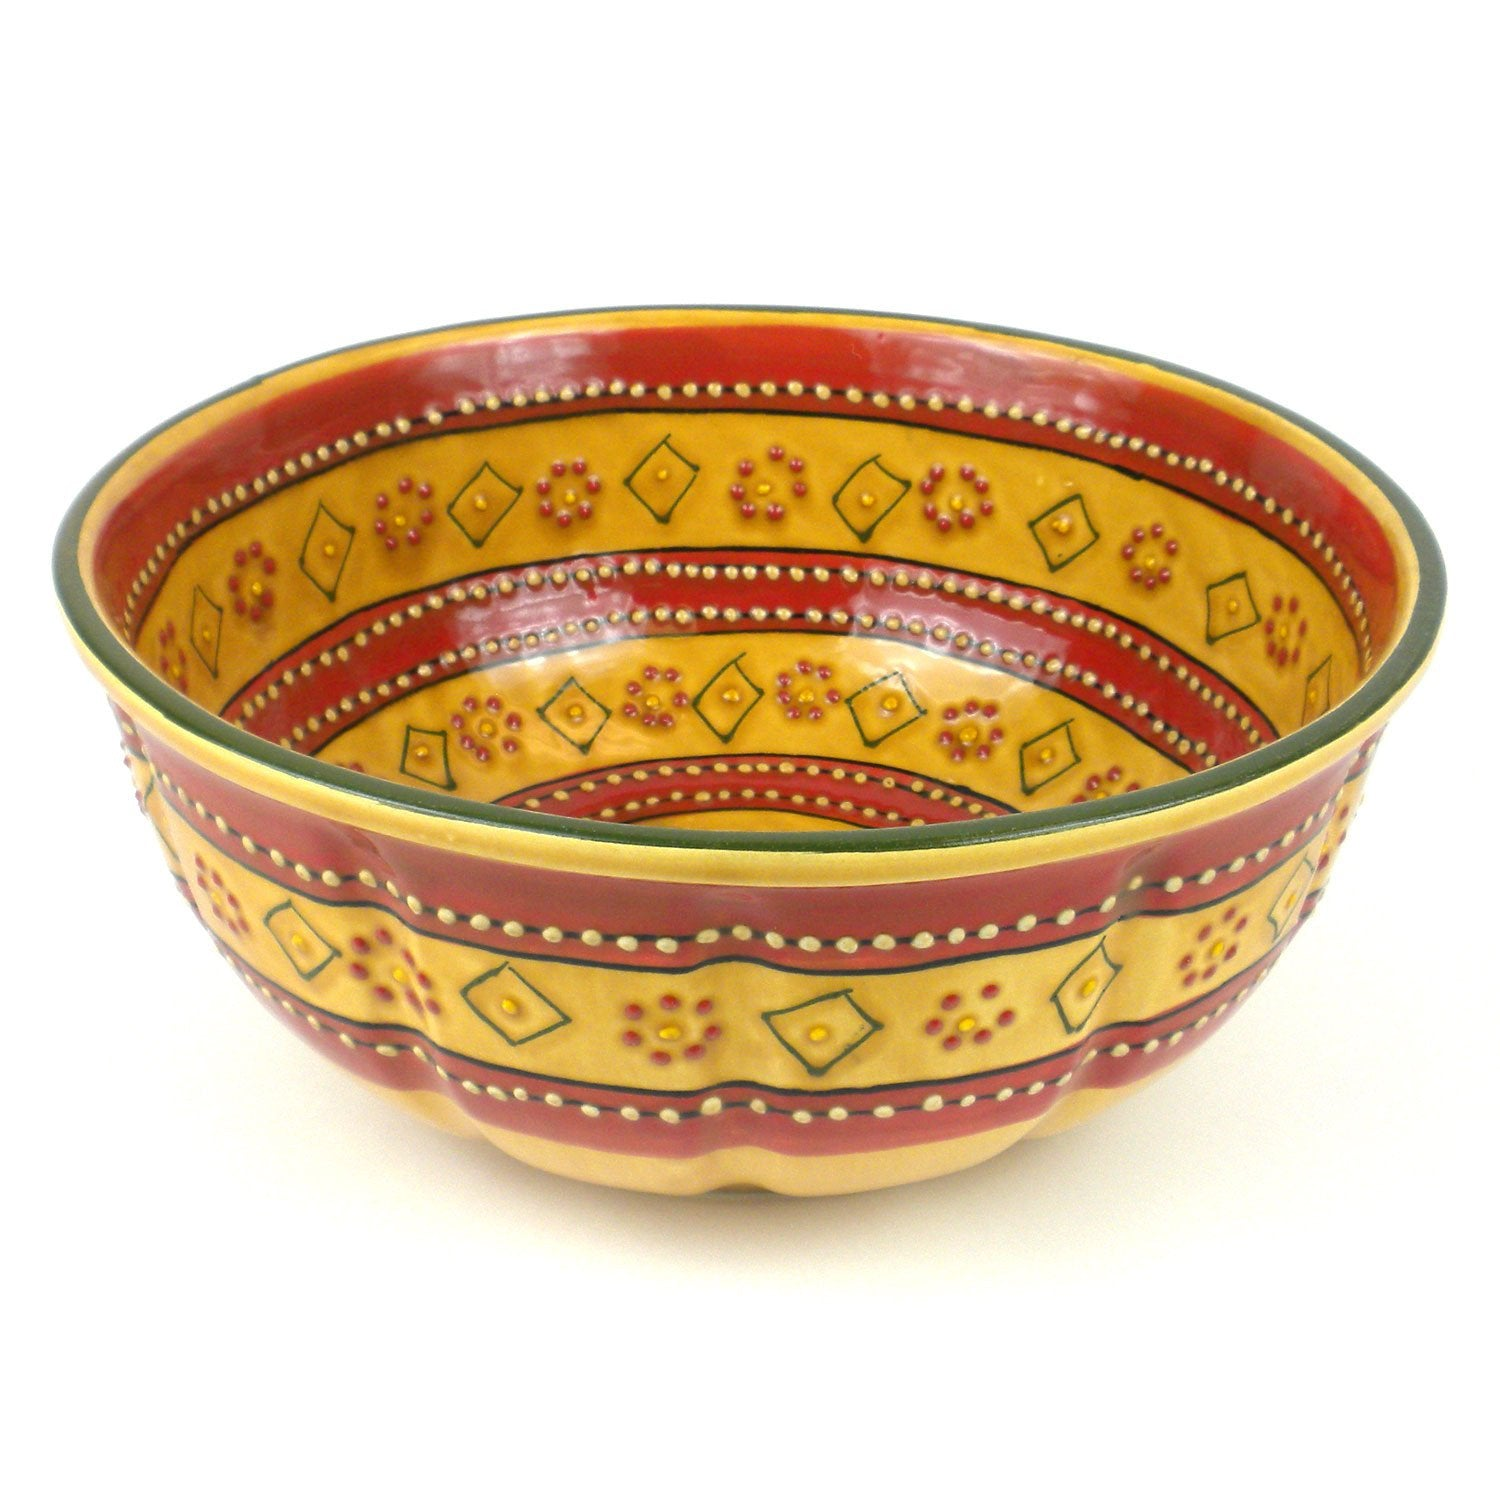 "Encantada Handmade Pottery 11.5"" Round Serving Bowl, Red"